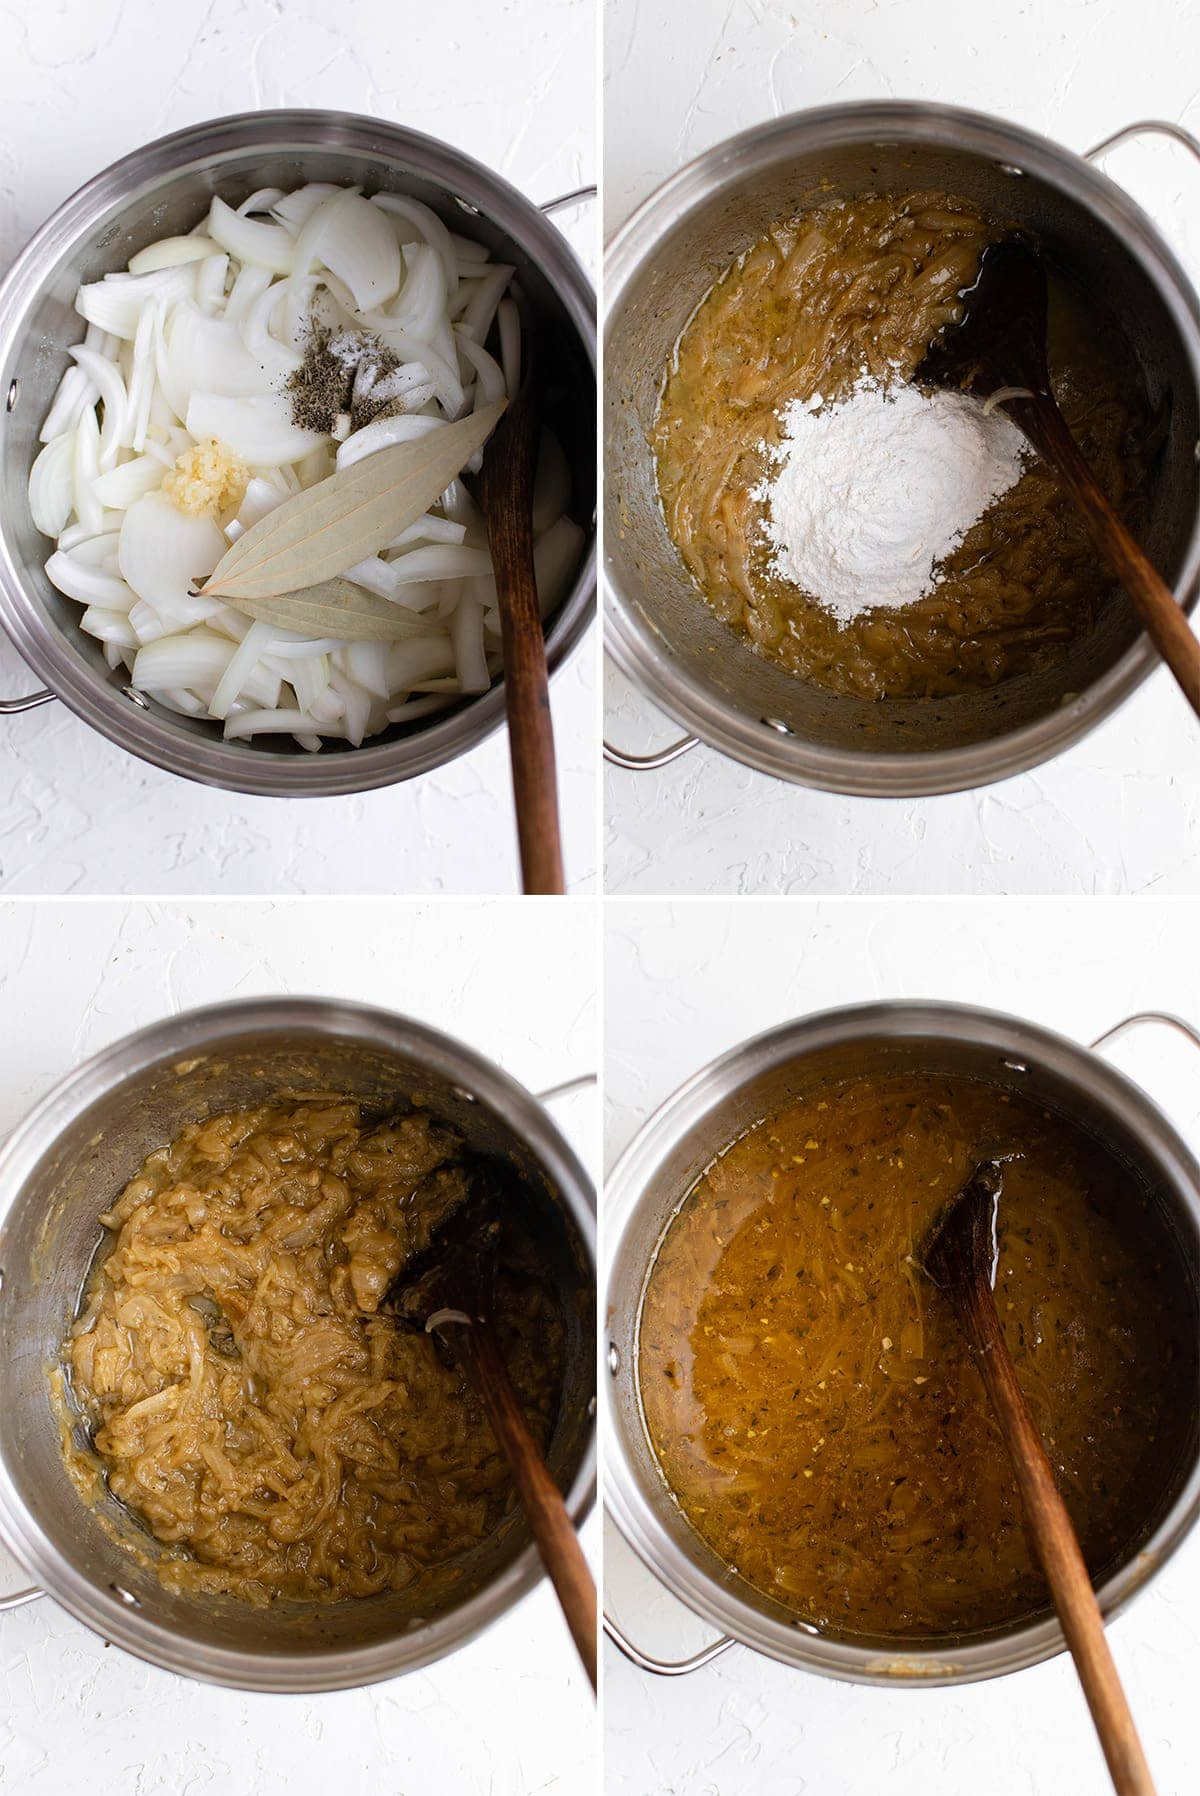 4 images in a collage with onions being made into soup